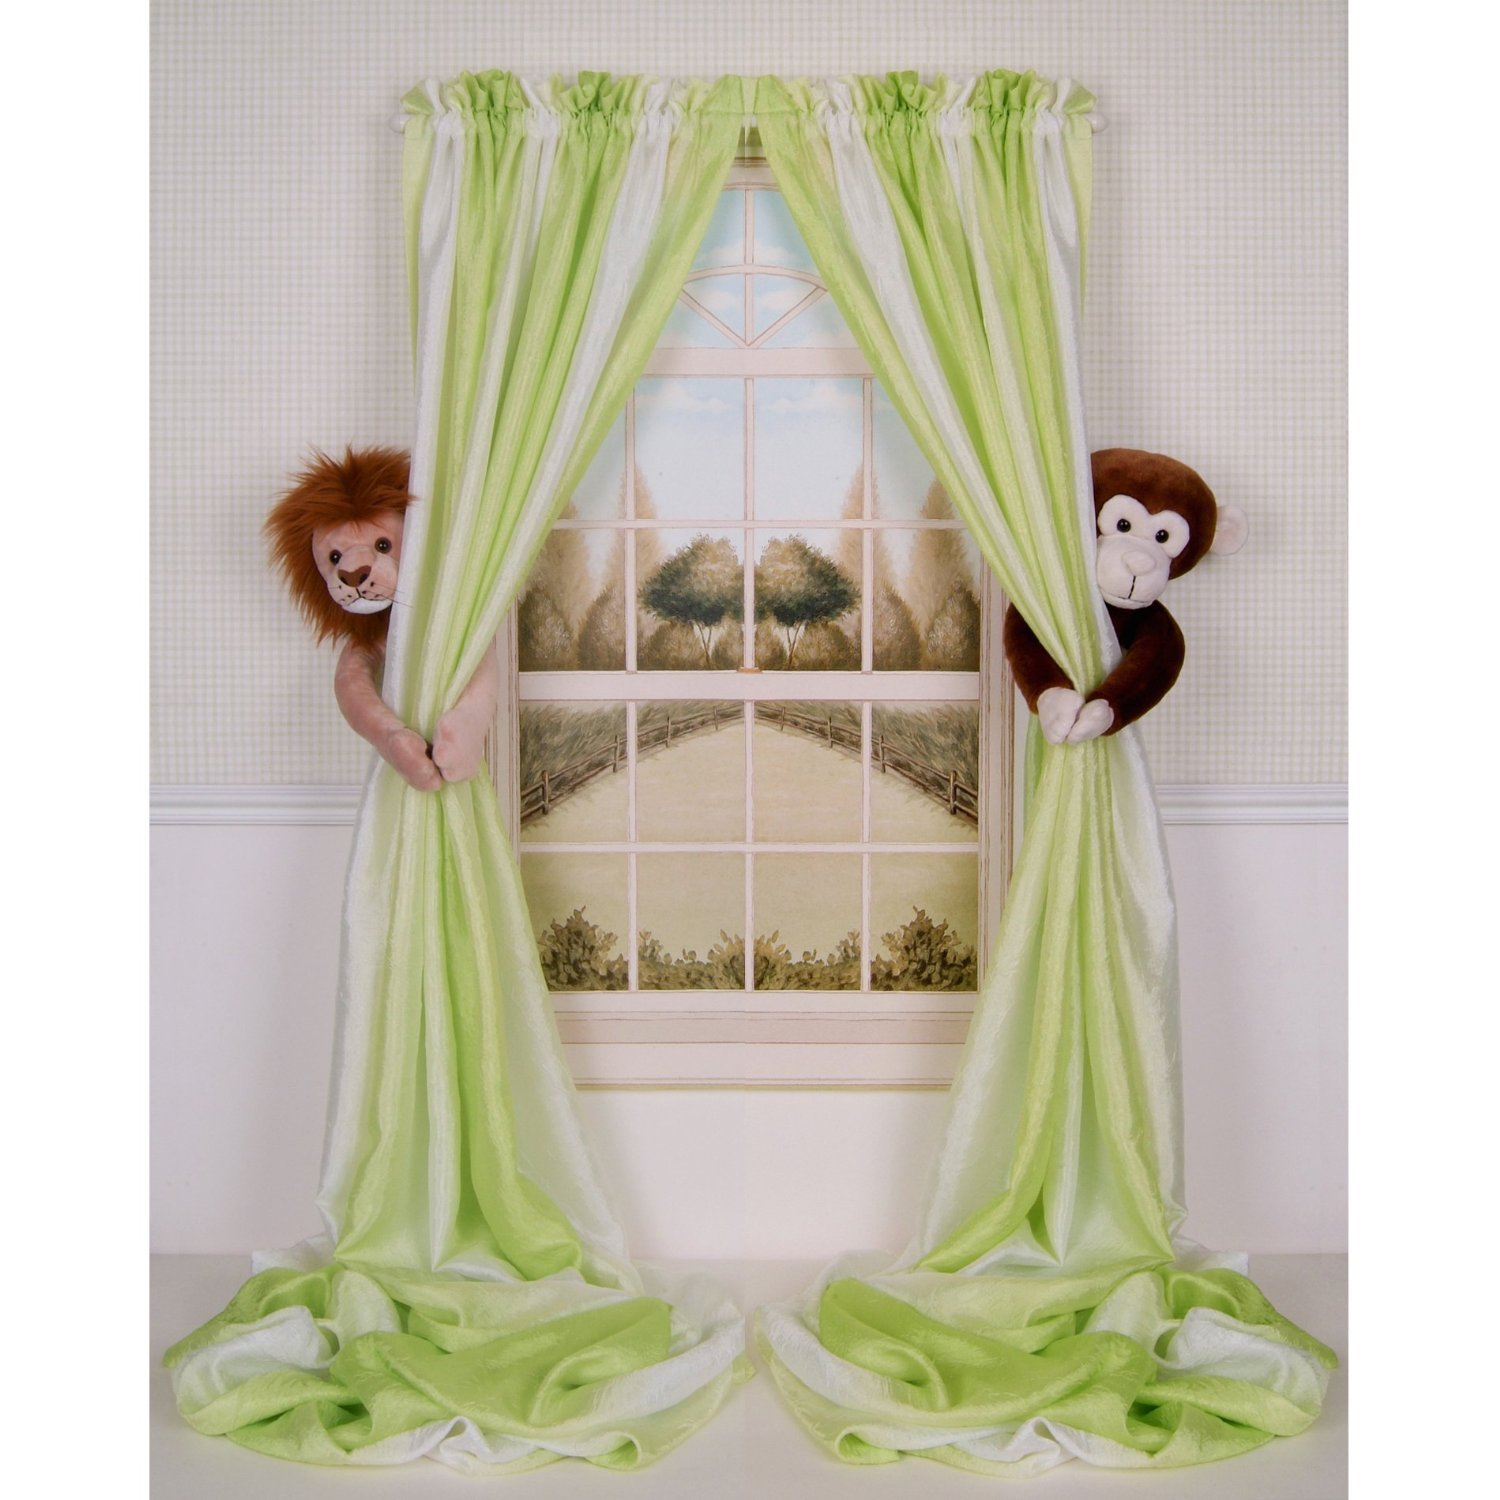 curtain holdbacks accessories cortinas decoration product tiebacks home rope tieback drapery window decorative